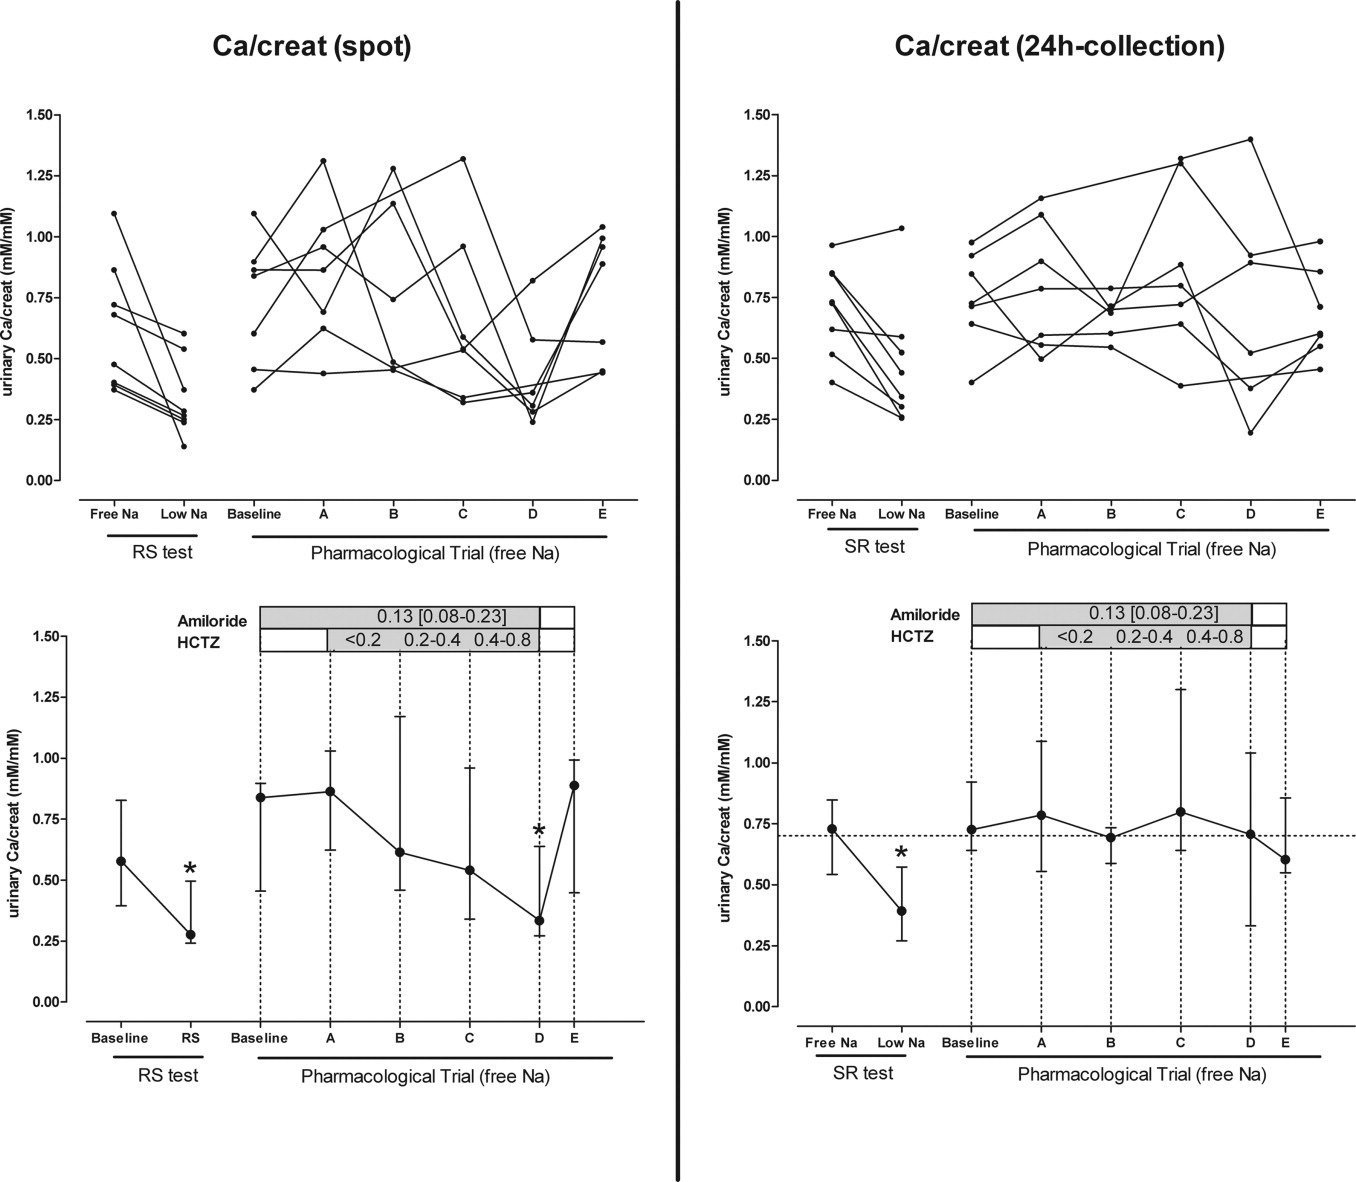 Effect of Hydrochlorothiazide on Urinary Calcium Excretion